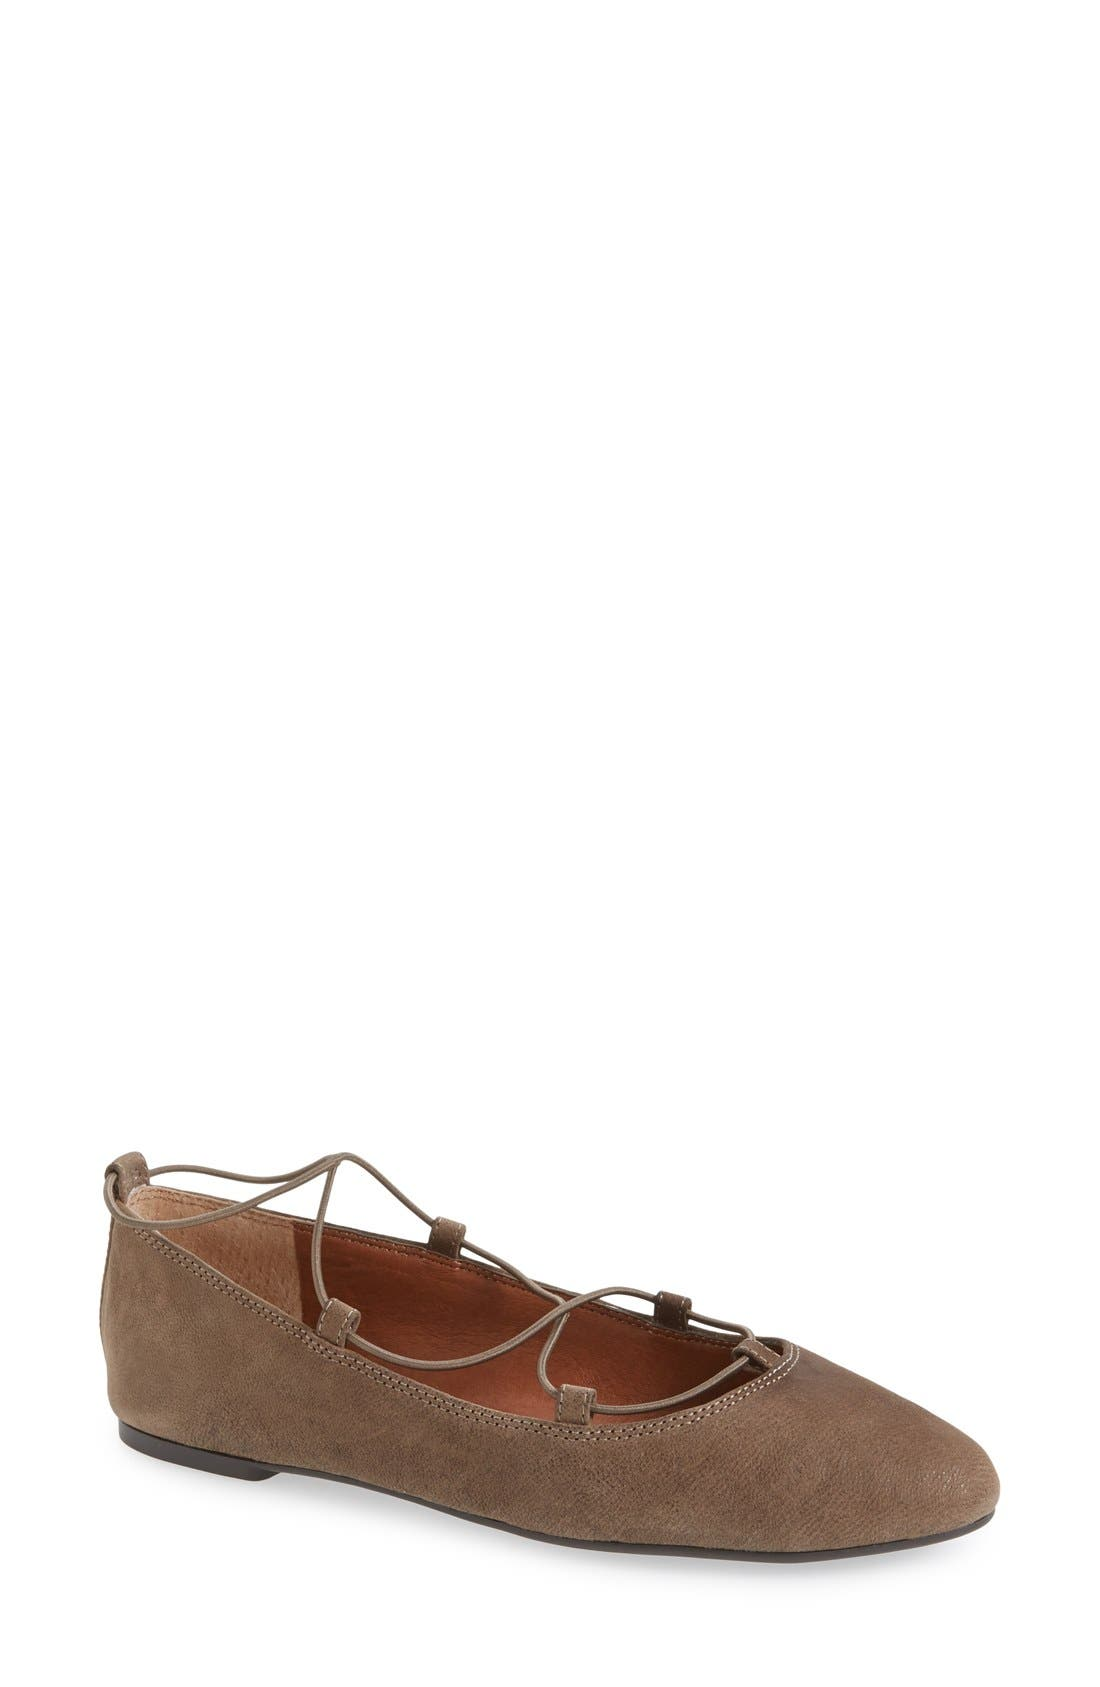 'Aviee' Lace-Up Flat,                             Main thumbnail 6, color,